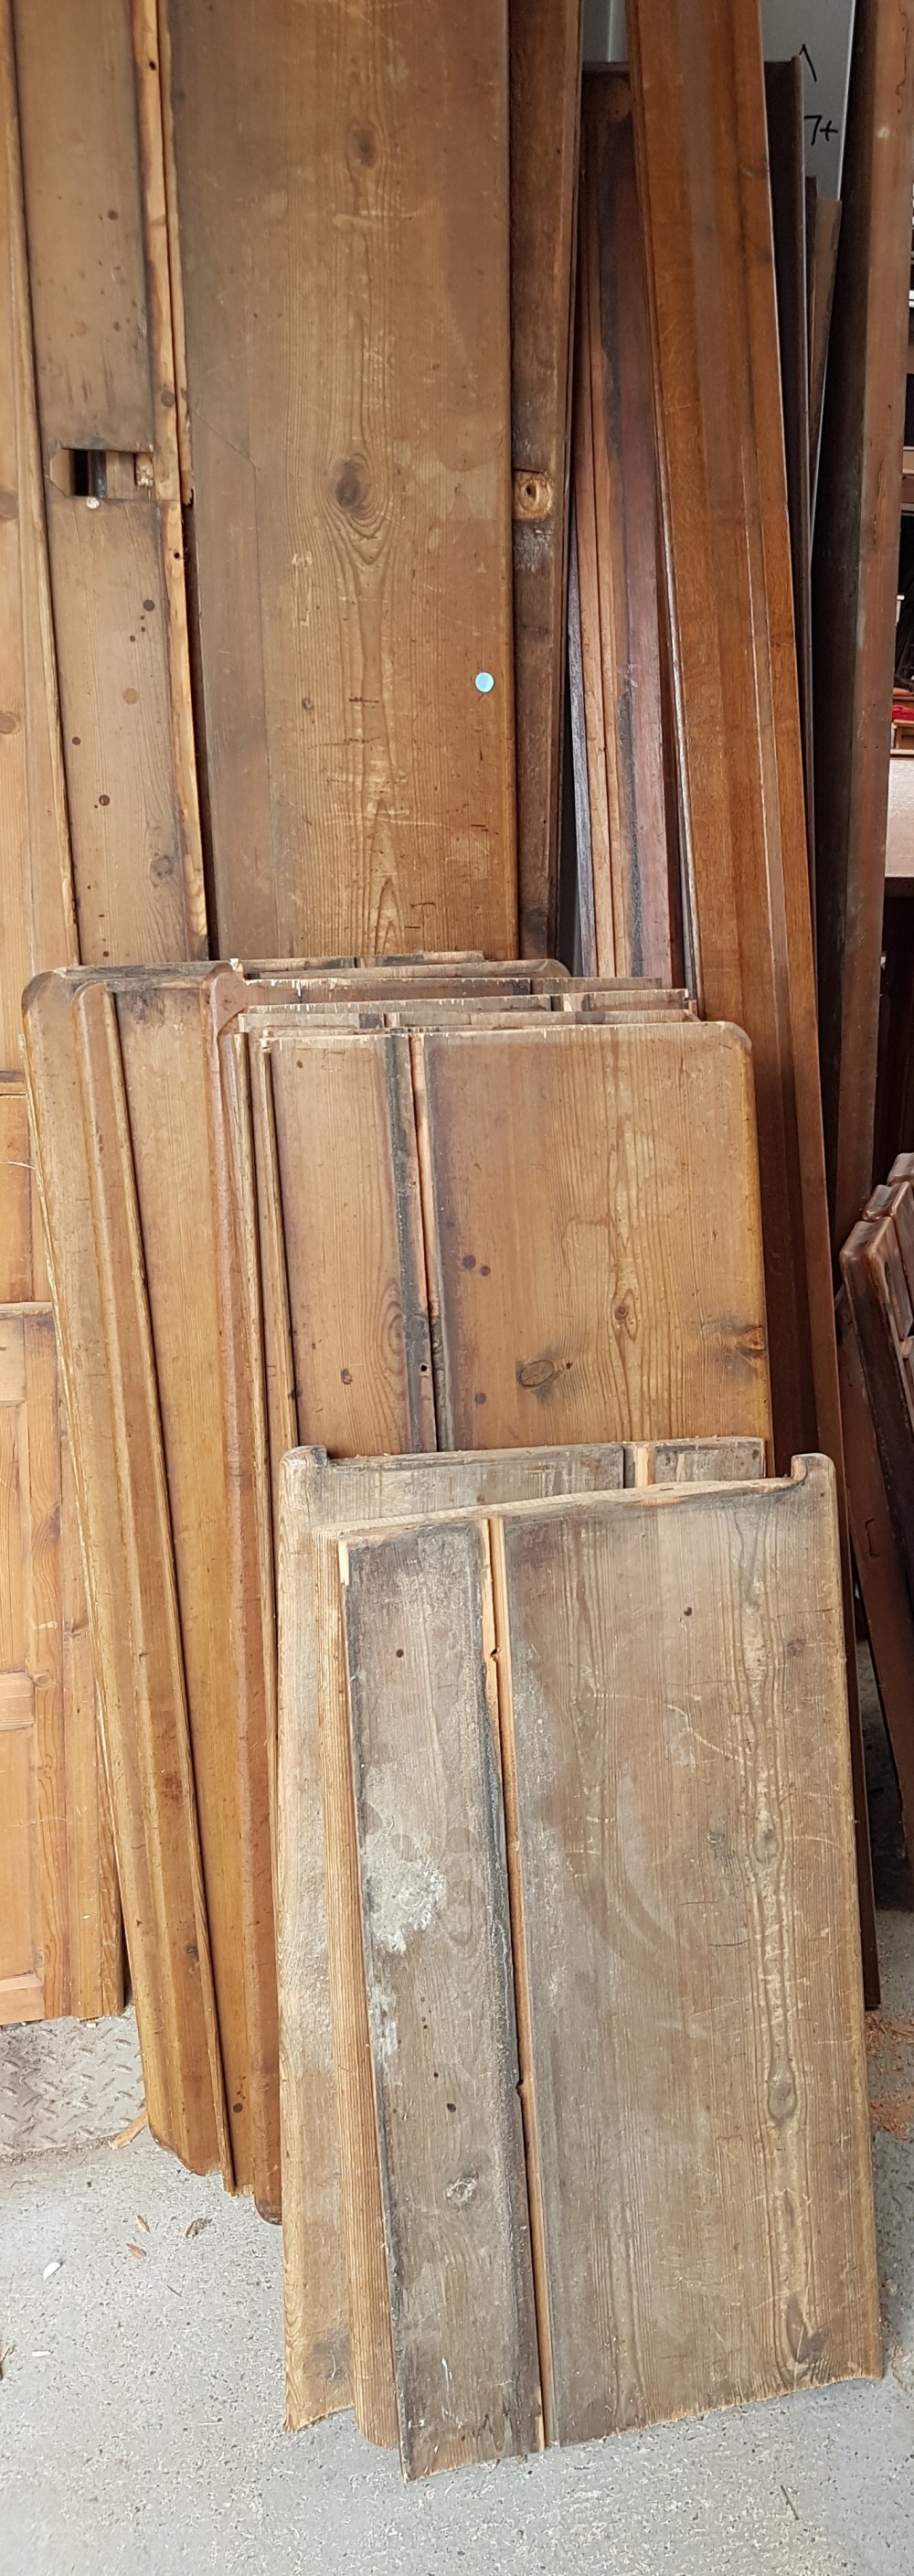 Extra Wide 1870 Seasoned Antique Pine planks pew seats - Image 2 of 3